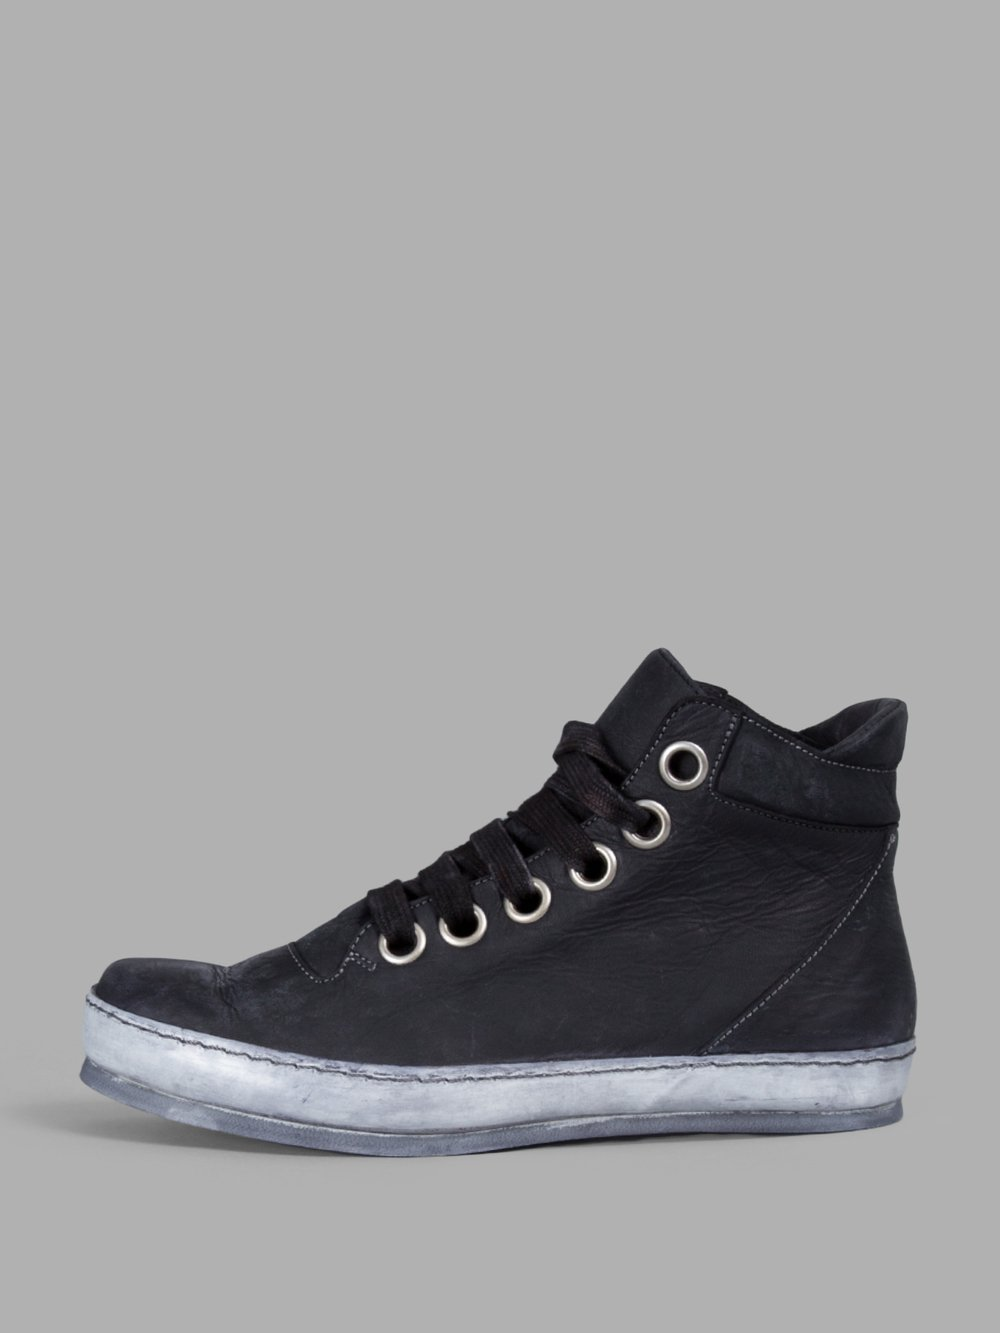 A DICIANNOVEVENTITRE A Diciannoveventitre Women'S Black Leather Sneakers